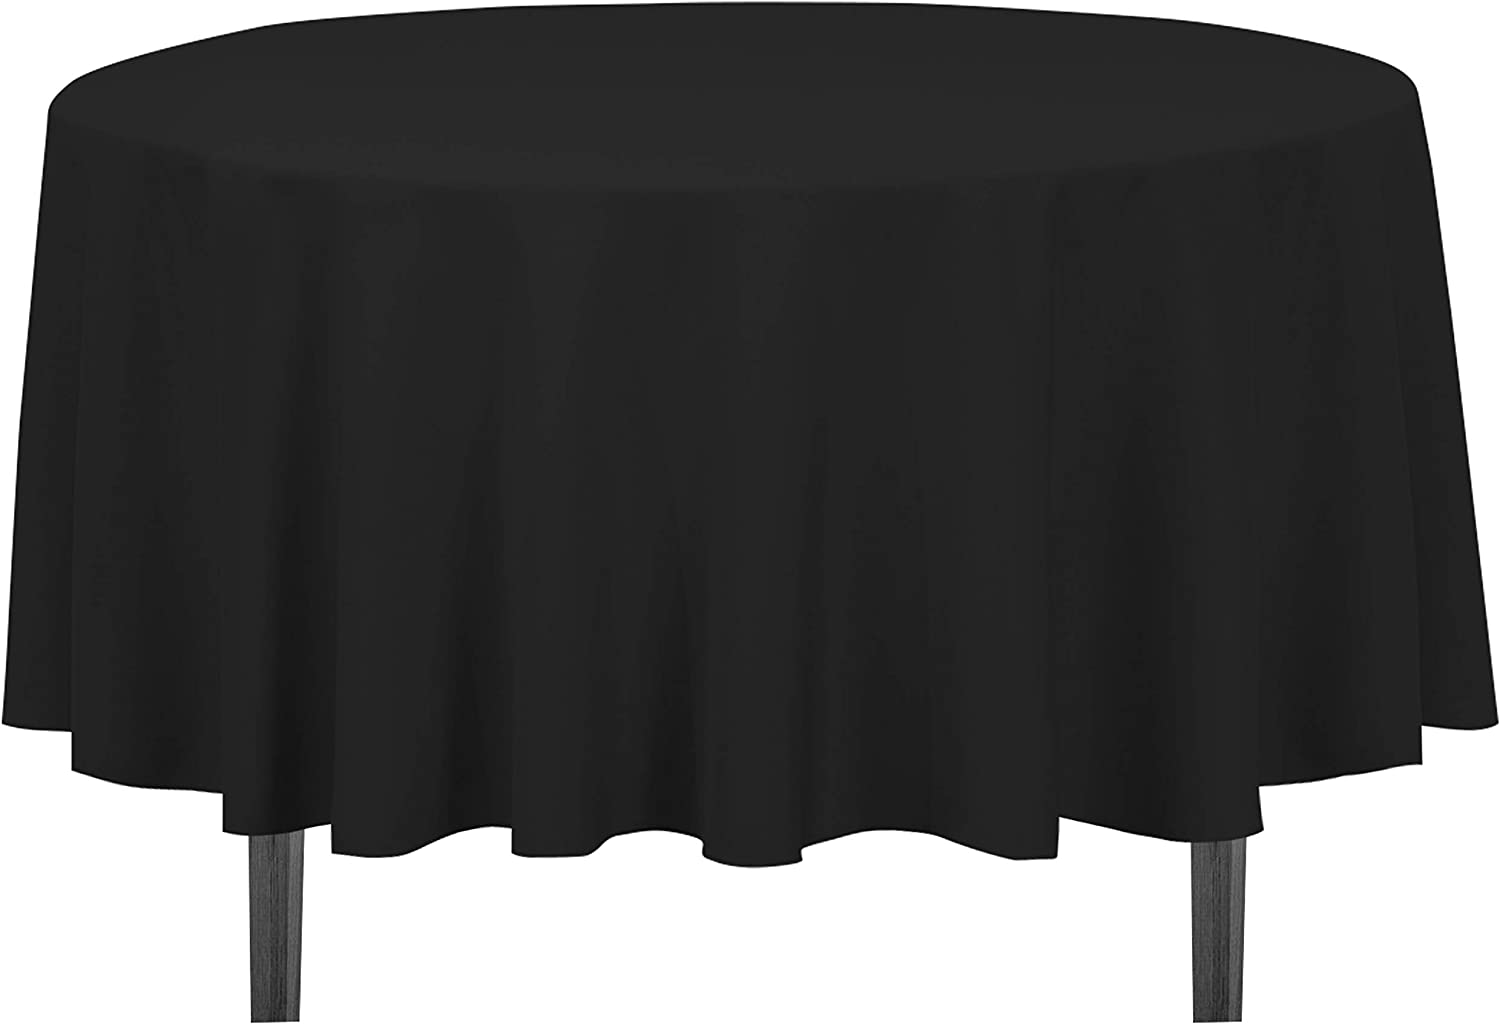 LinenTablecloth 90-Inch Round Polyester Tablecloth Black: Home & Kitchen